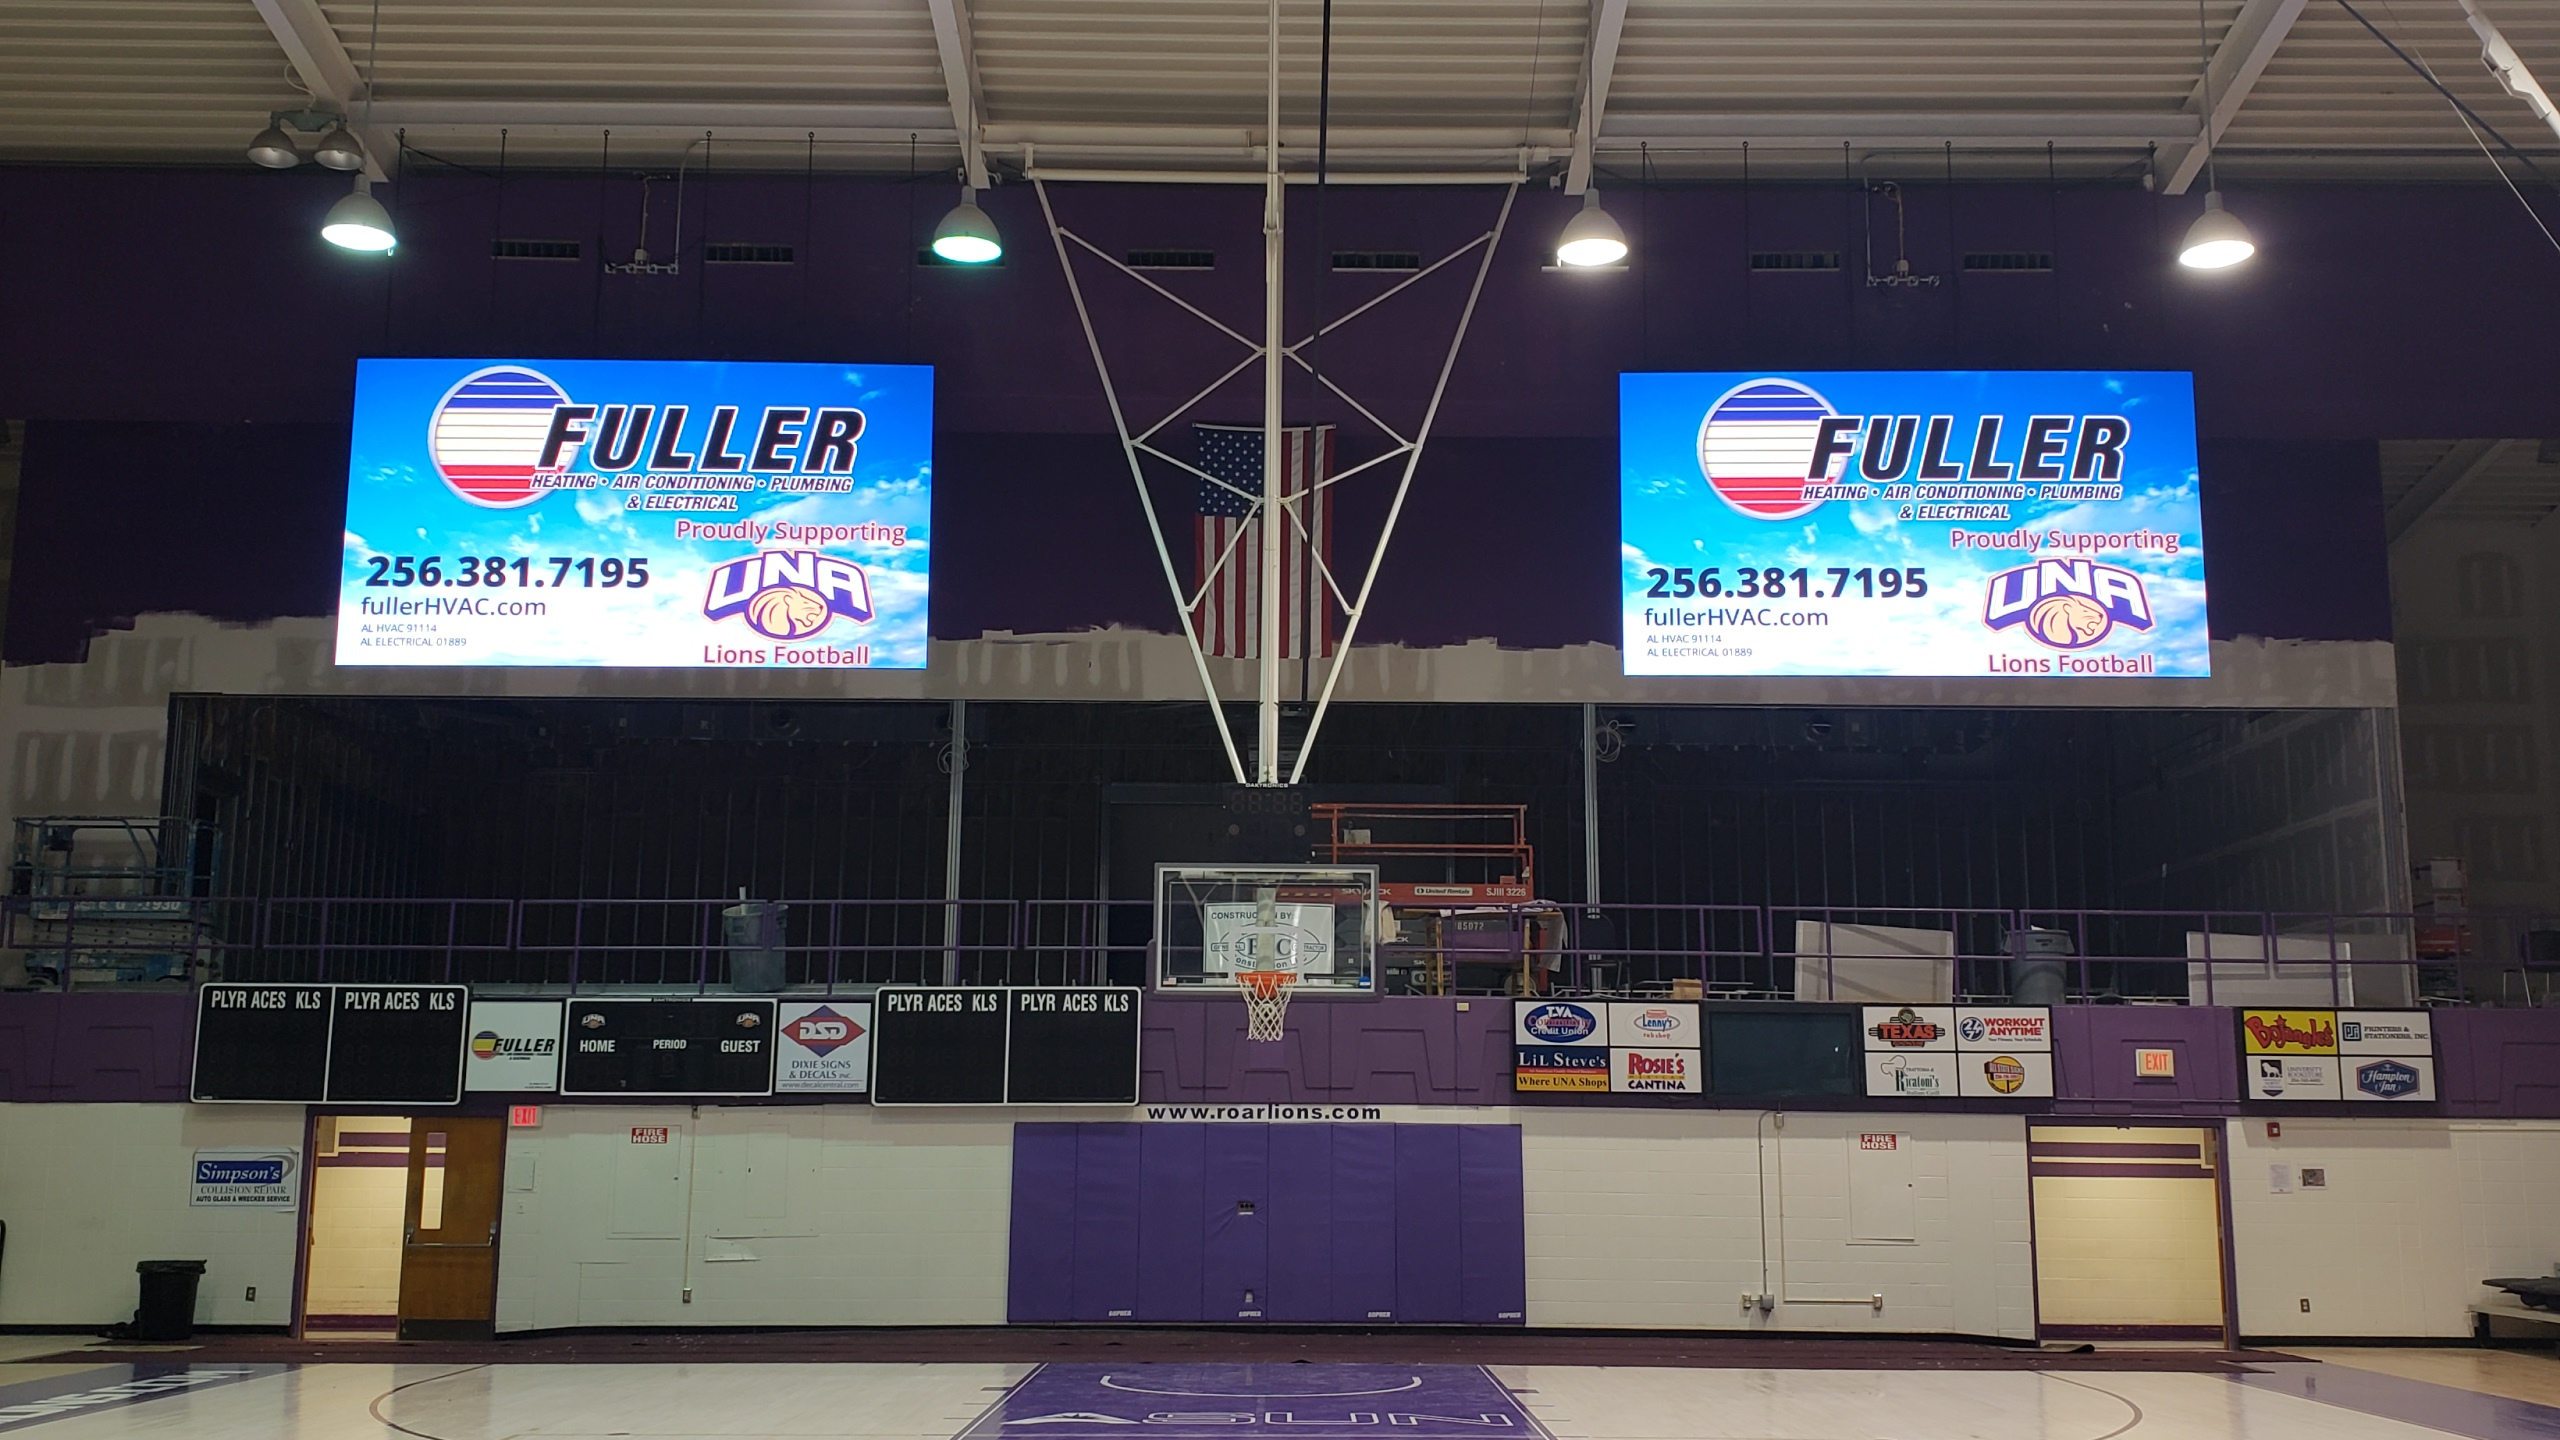 Two Large Video Screens on either side of the basketball net at The University of North Alabama